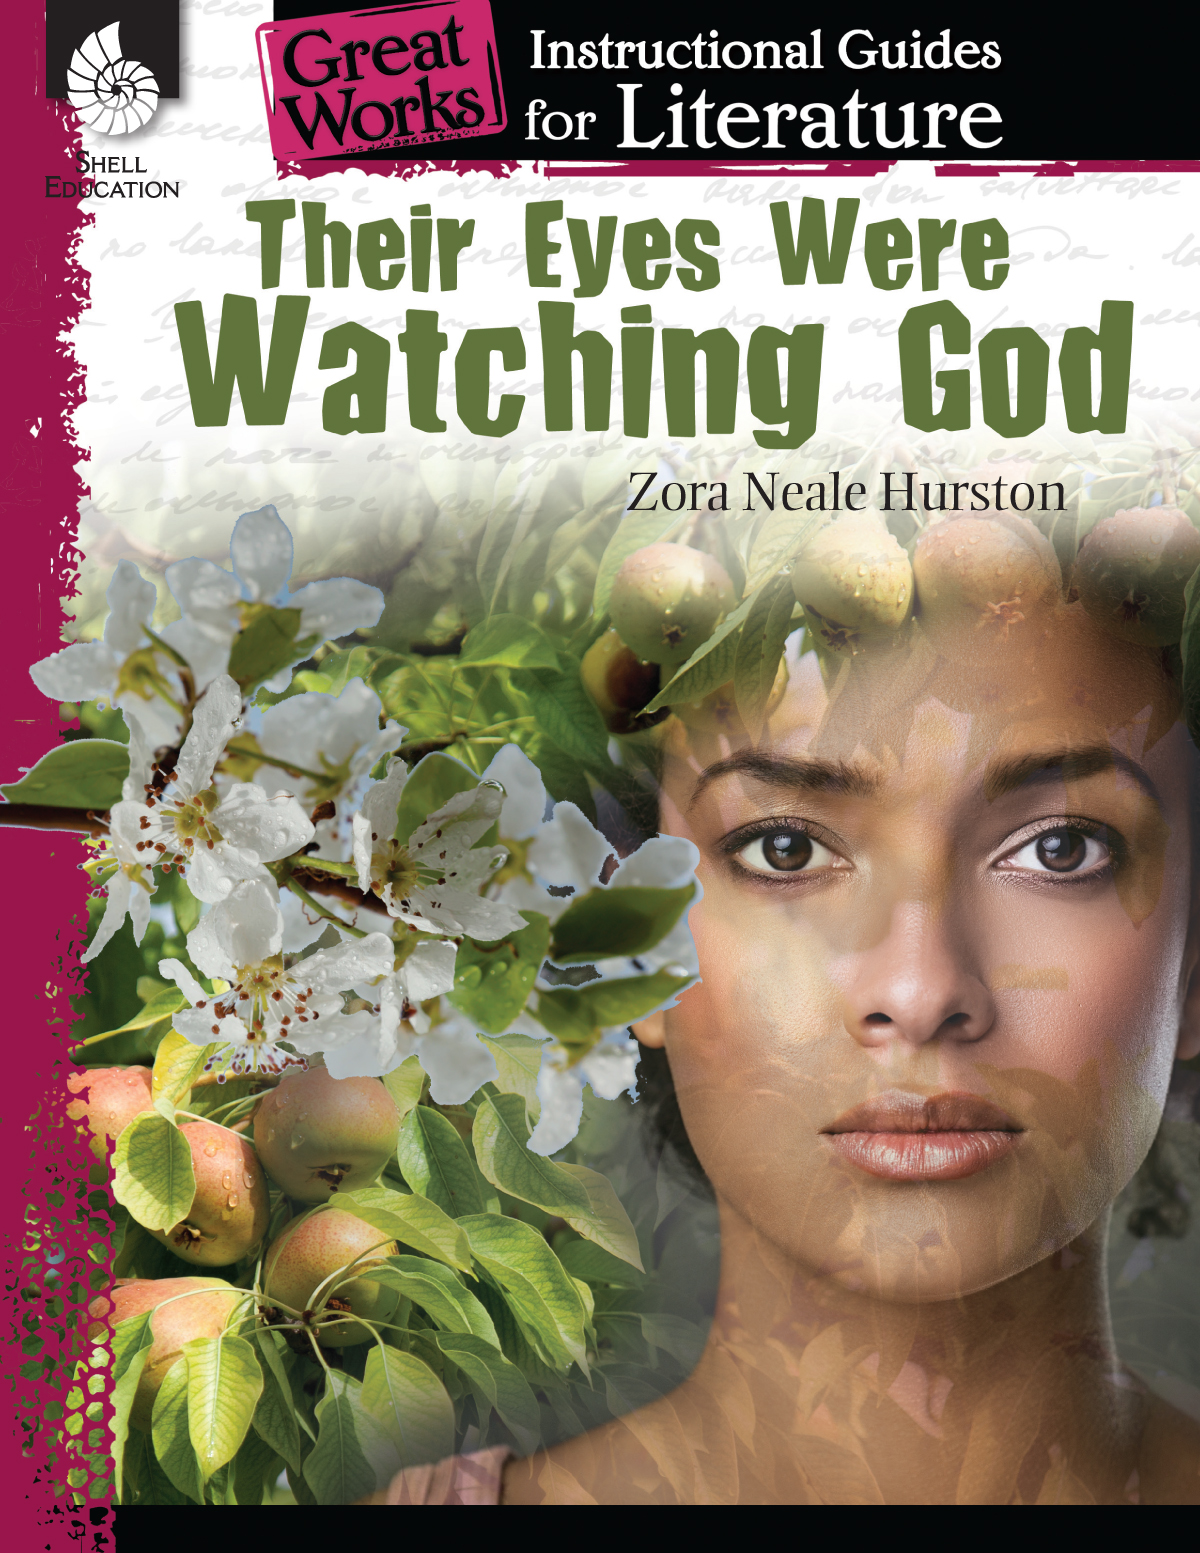 Great Works Instructional Guide for Literature: Their Eyes Were Watching God